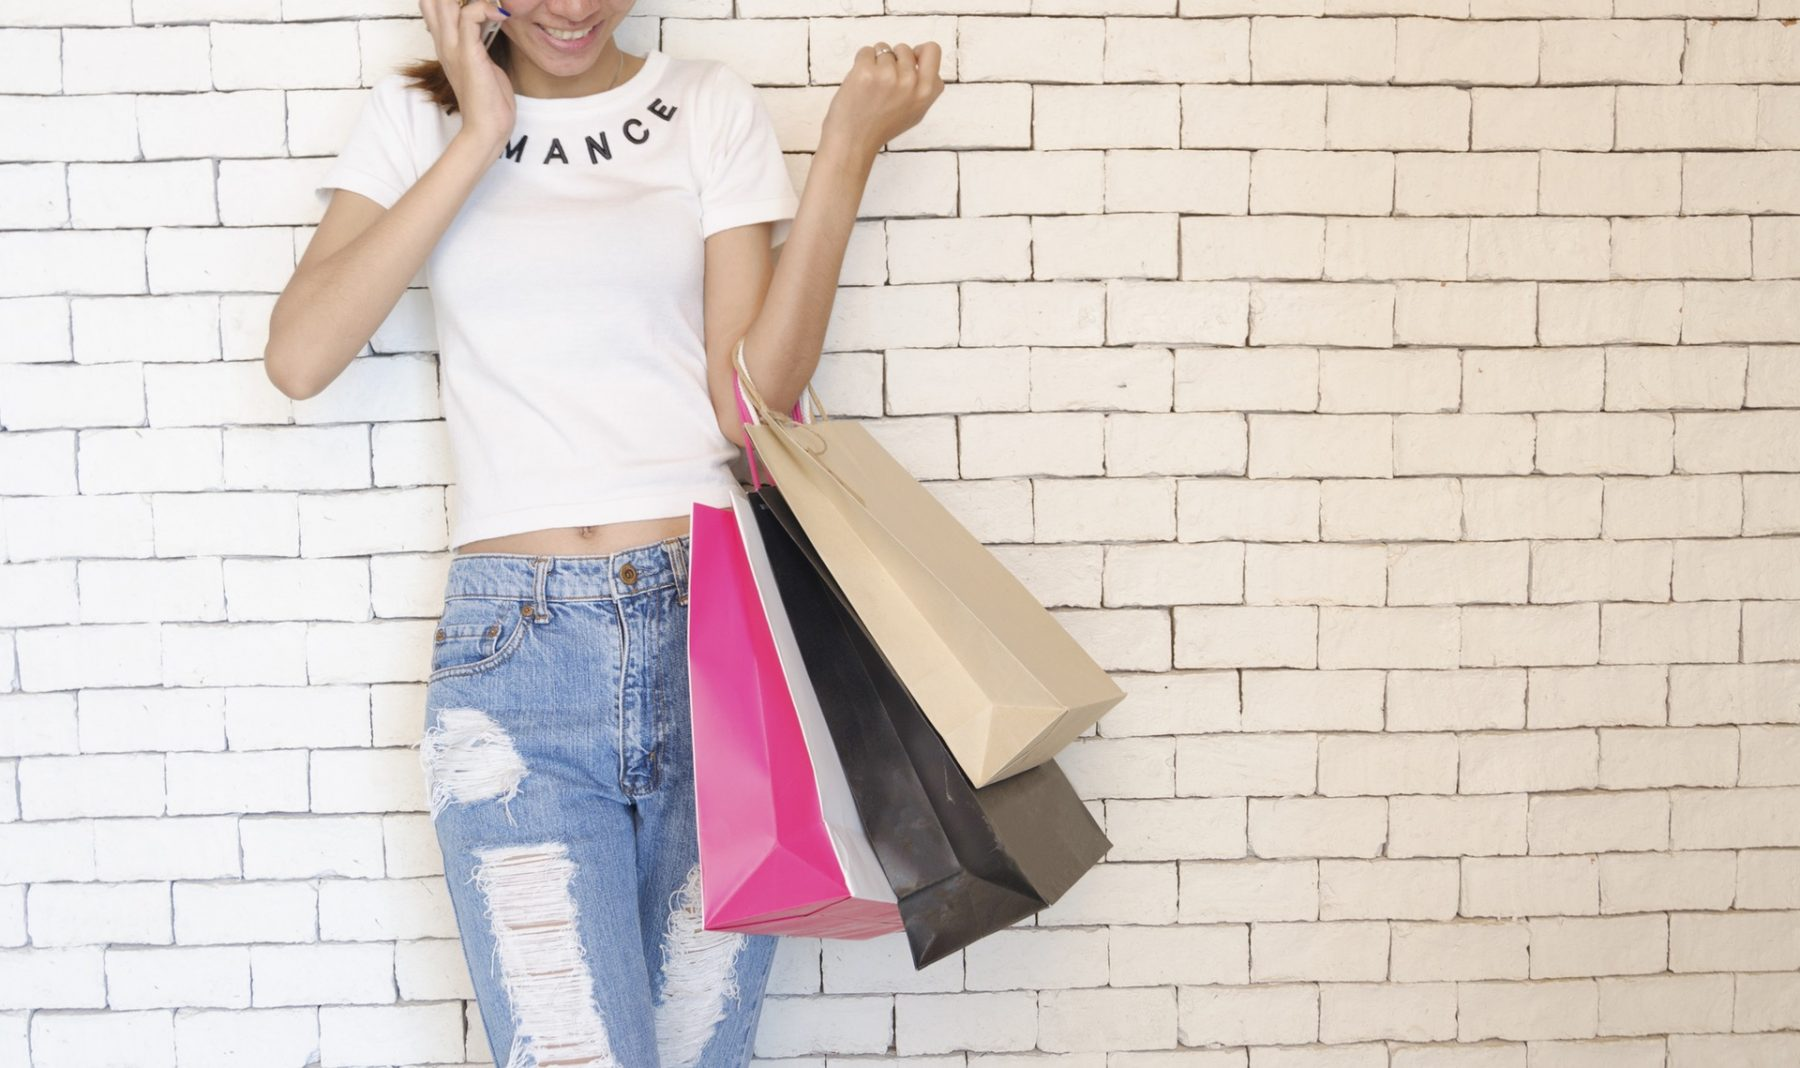 How You Can Make More Ethical Purchases